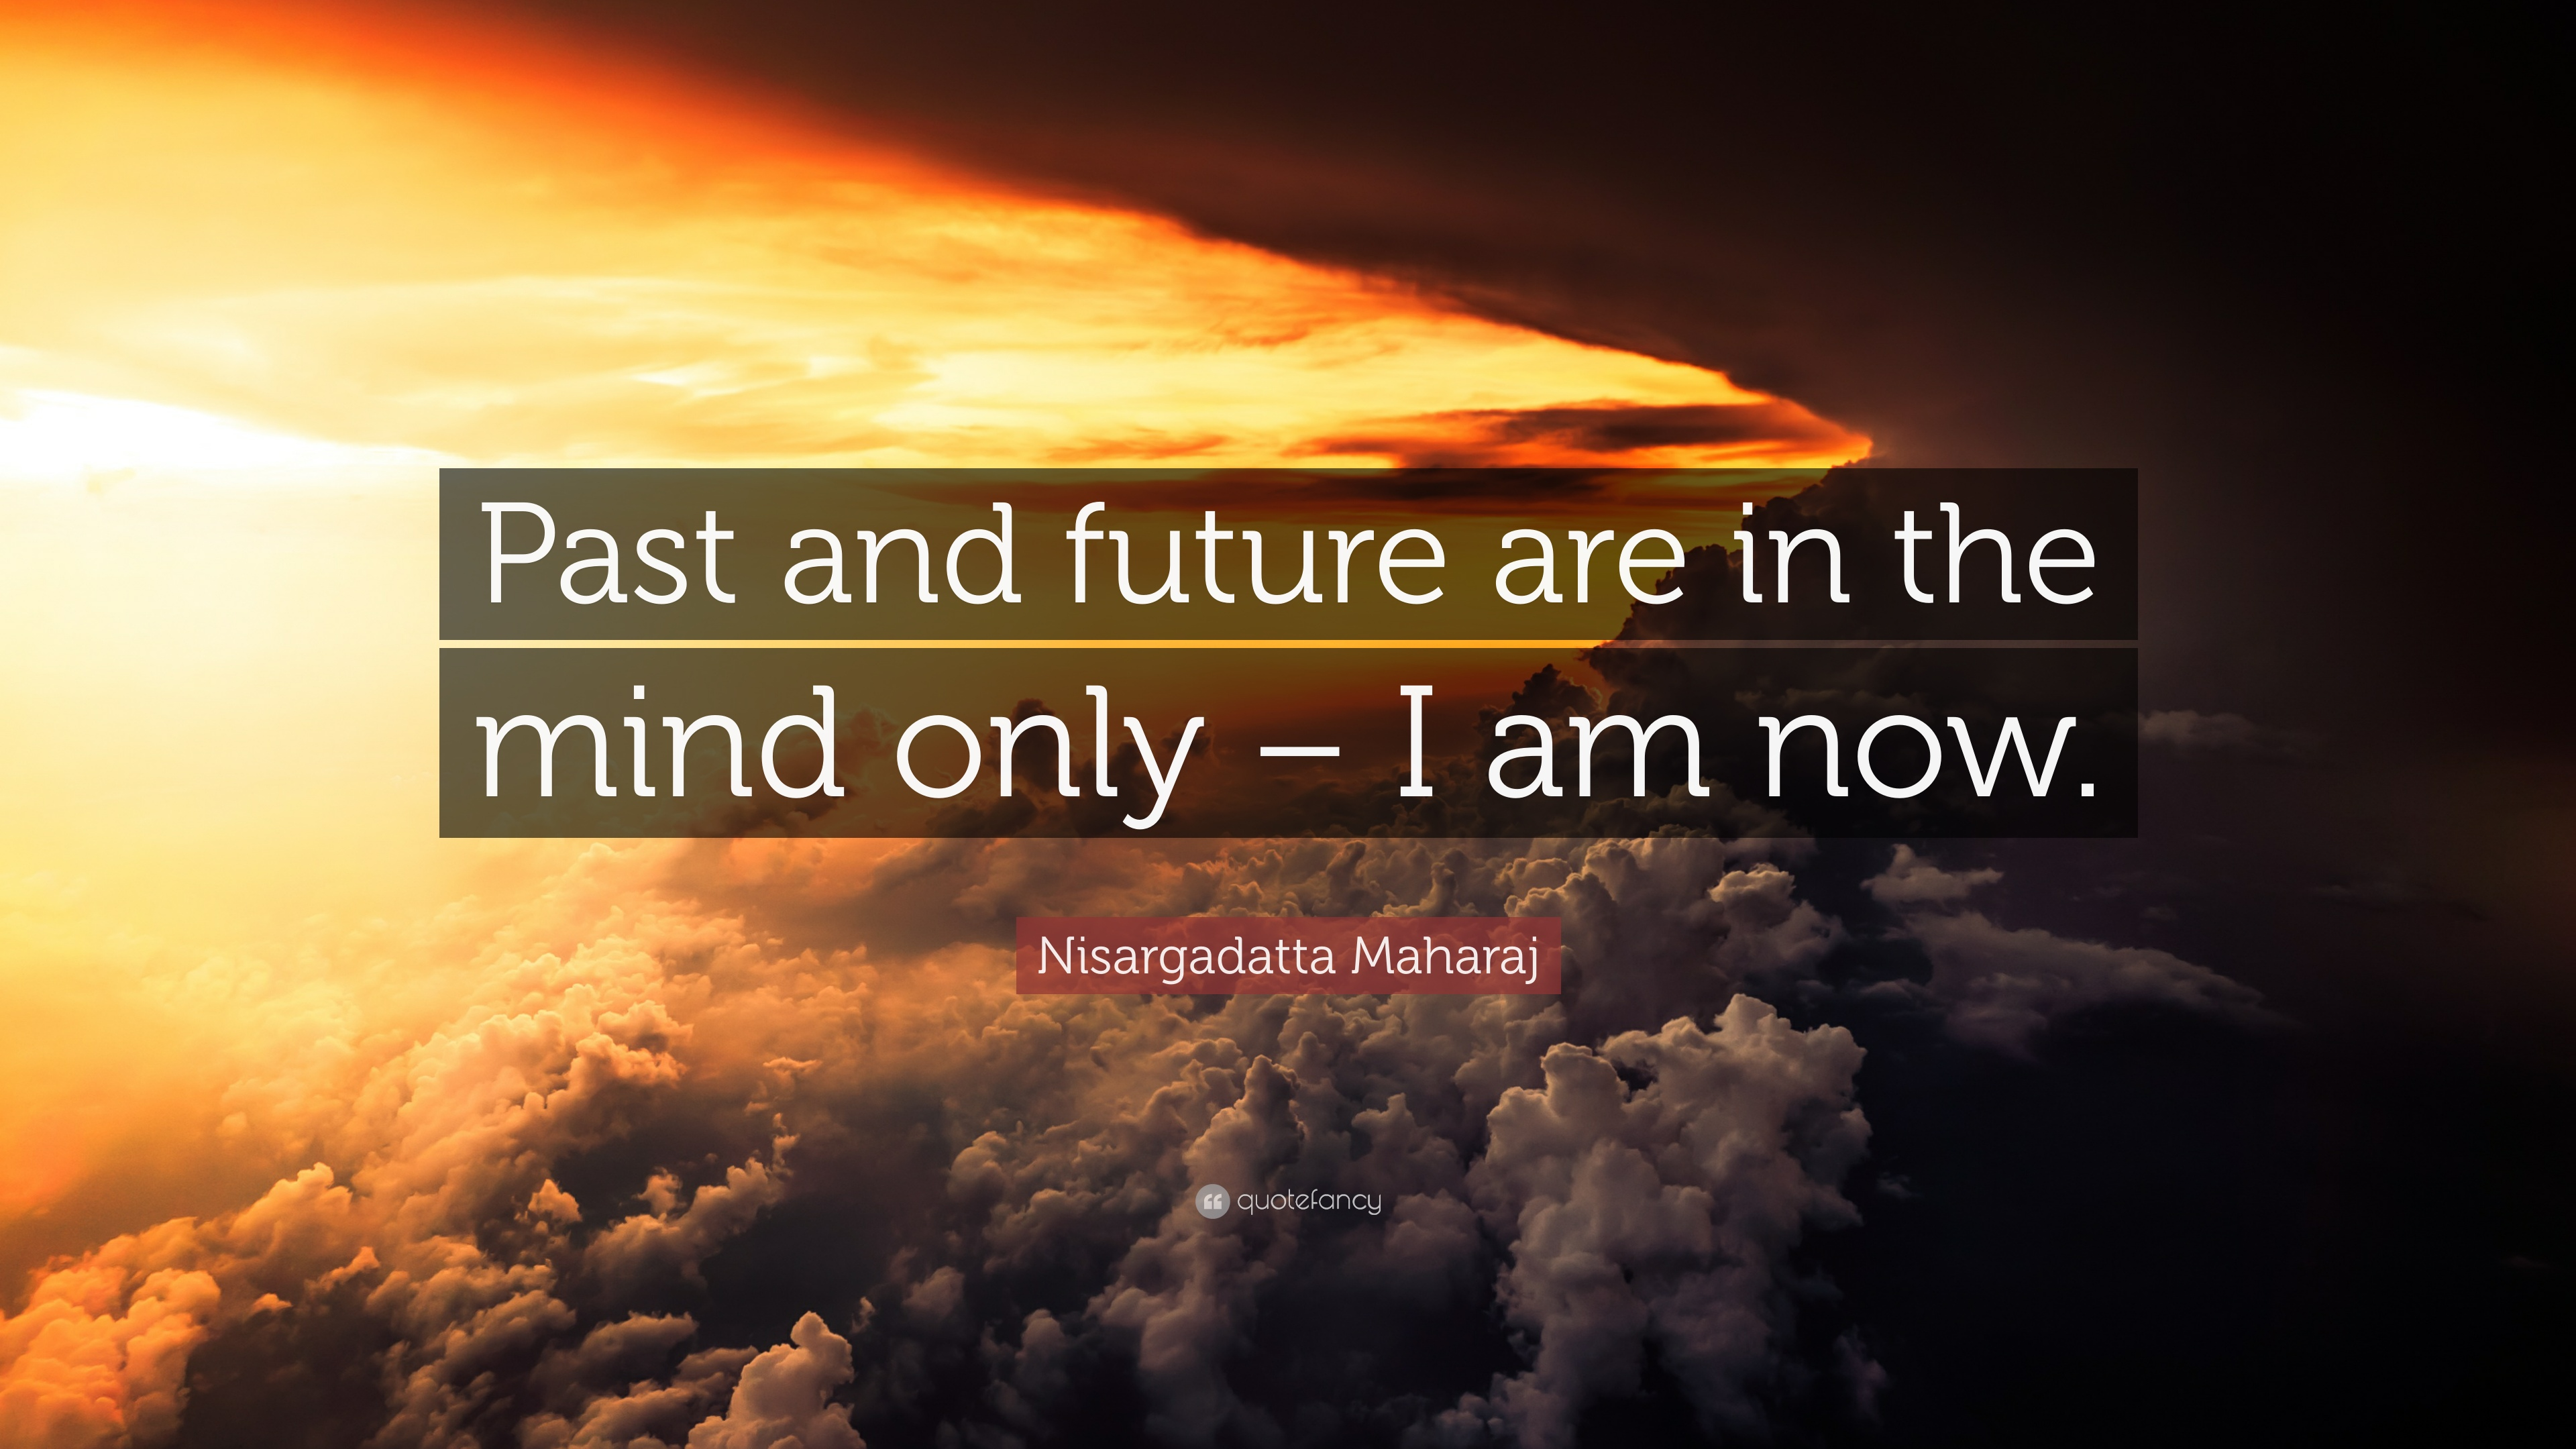 Nisargadatta Maharaj Quote Past And Future Are In The Mind Only